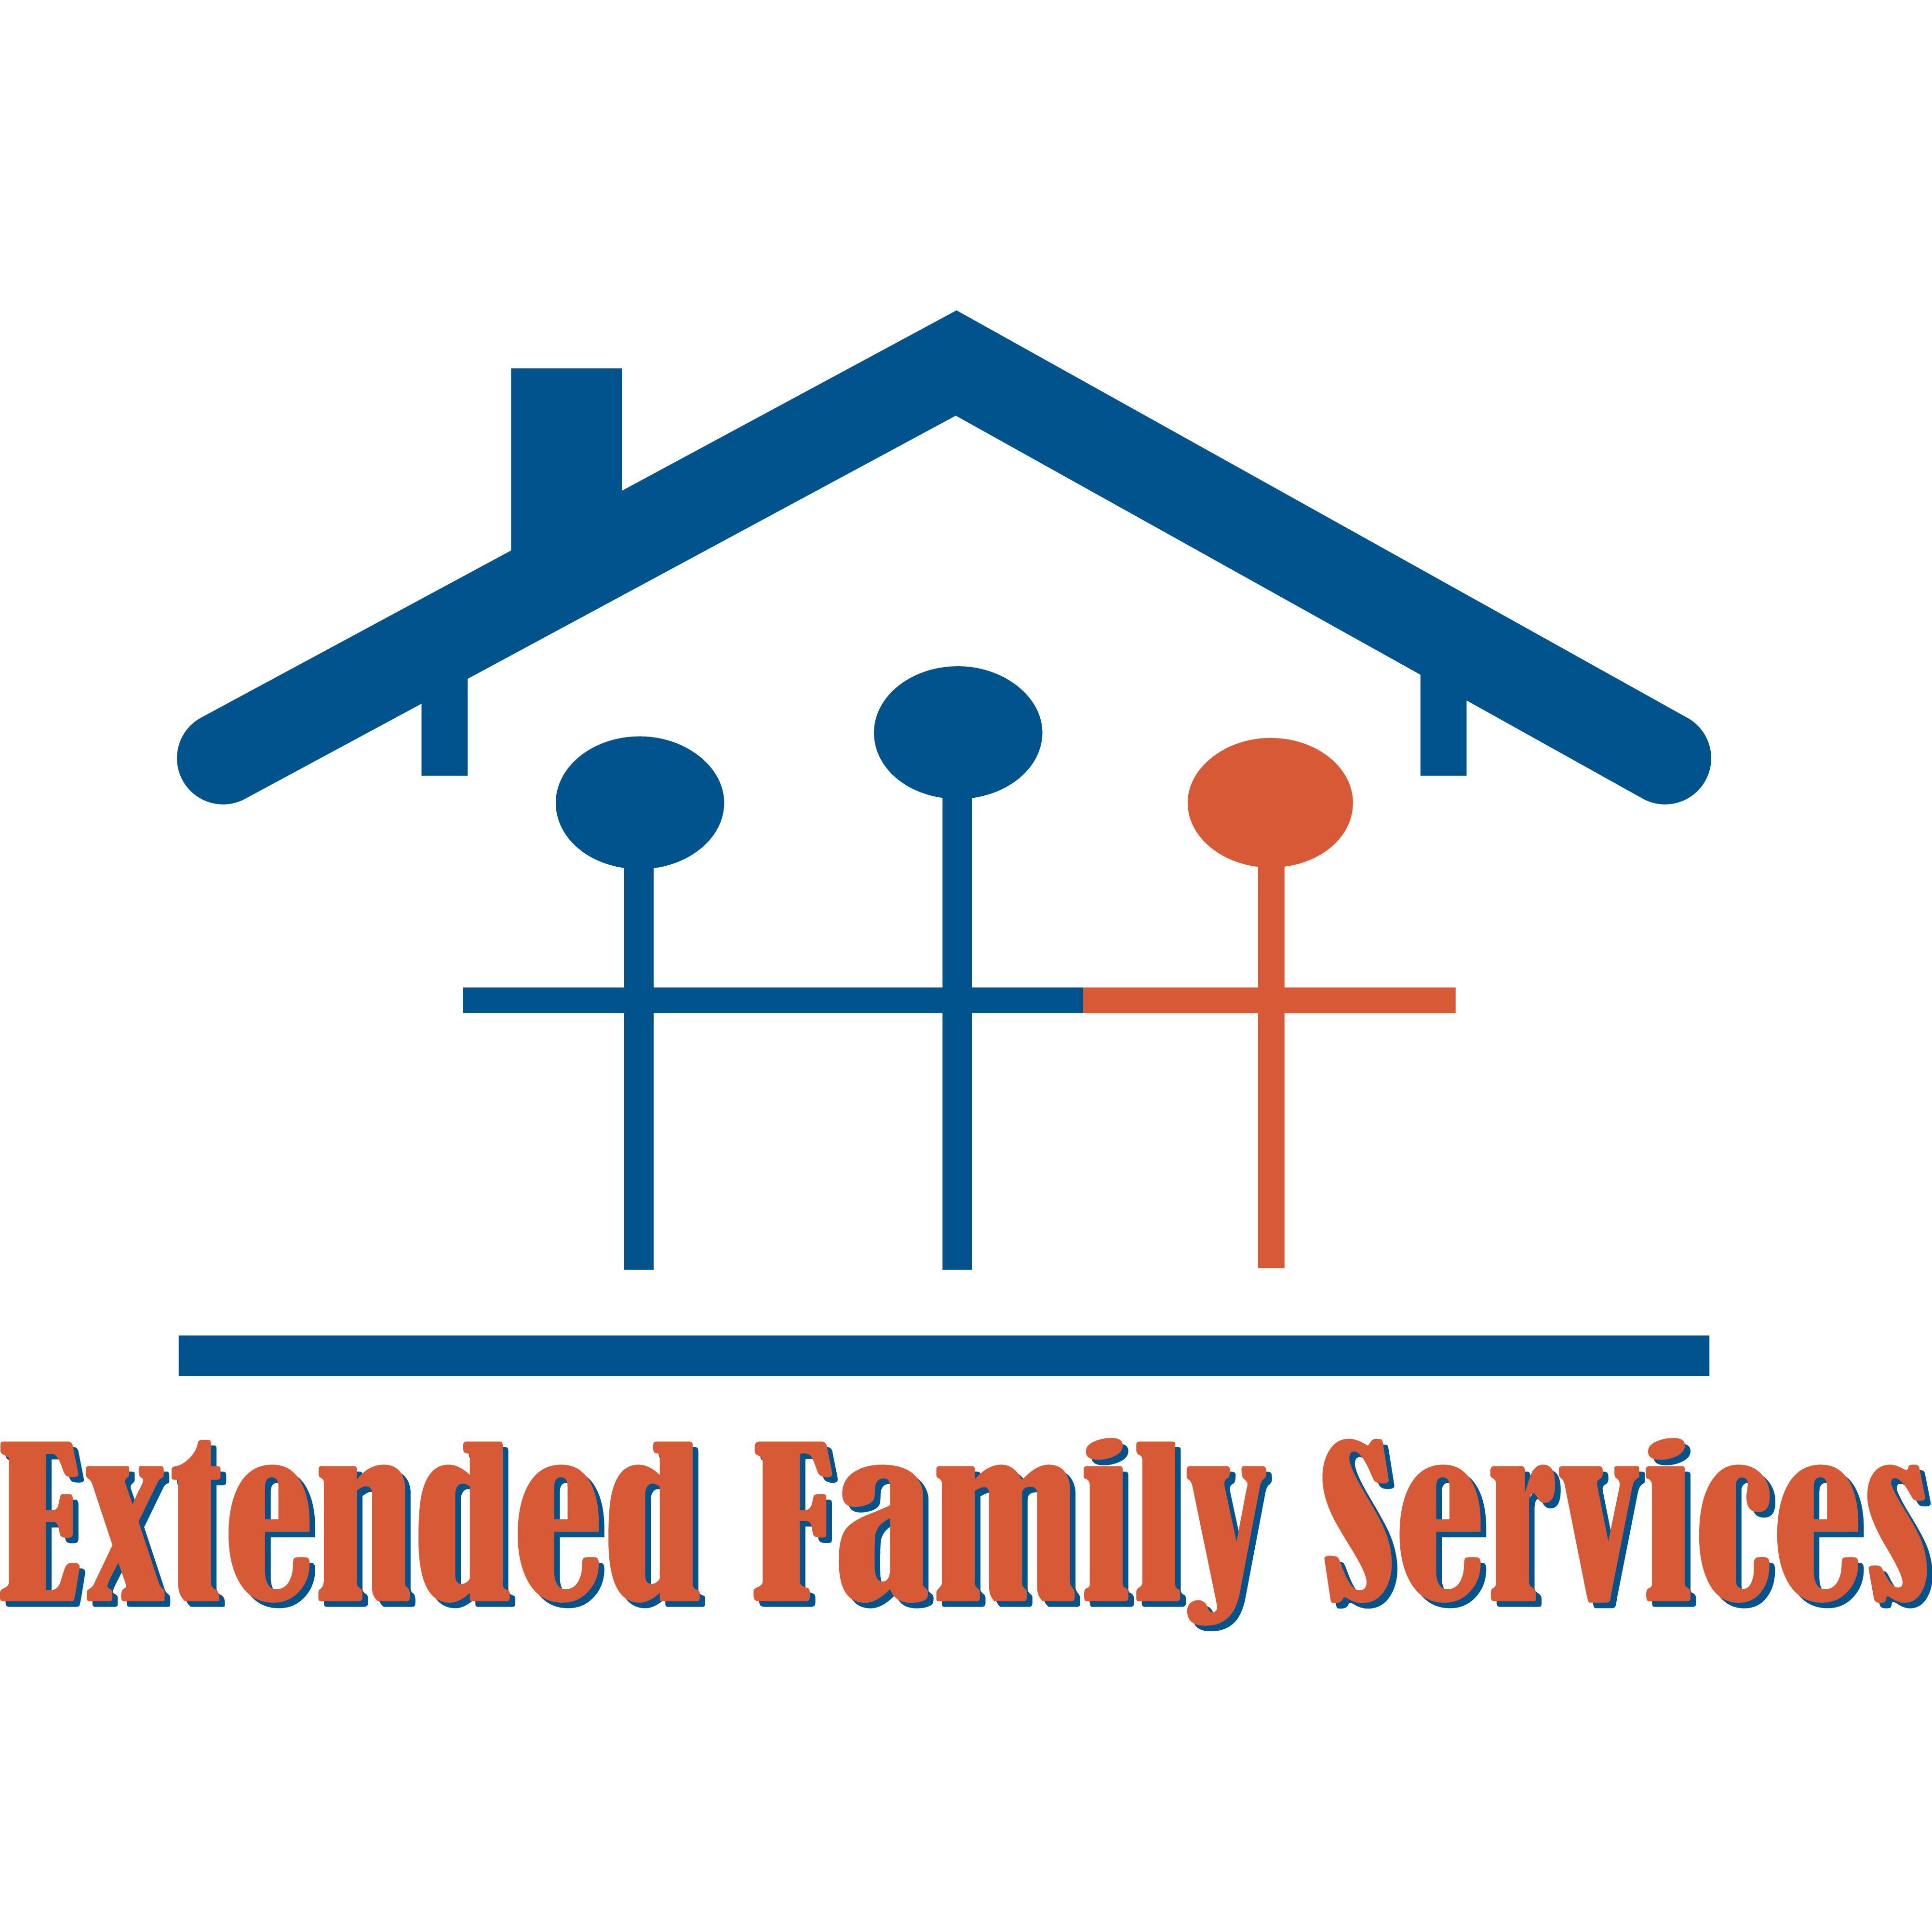 Extended Family Services